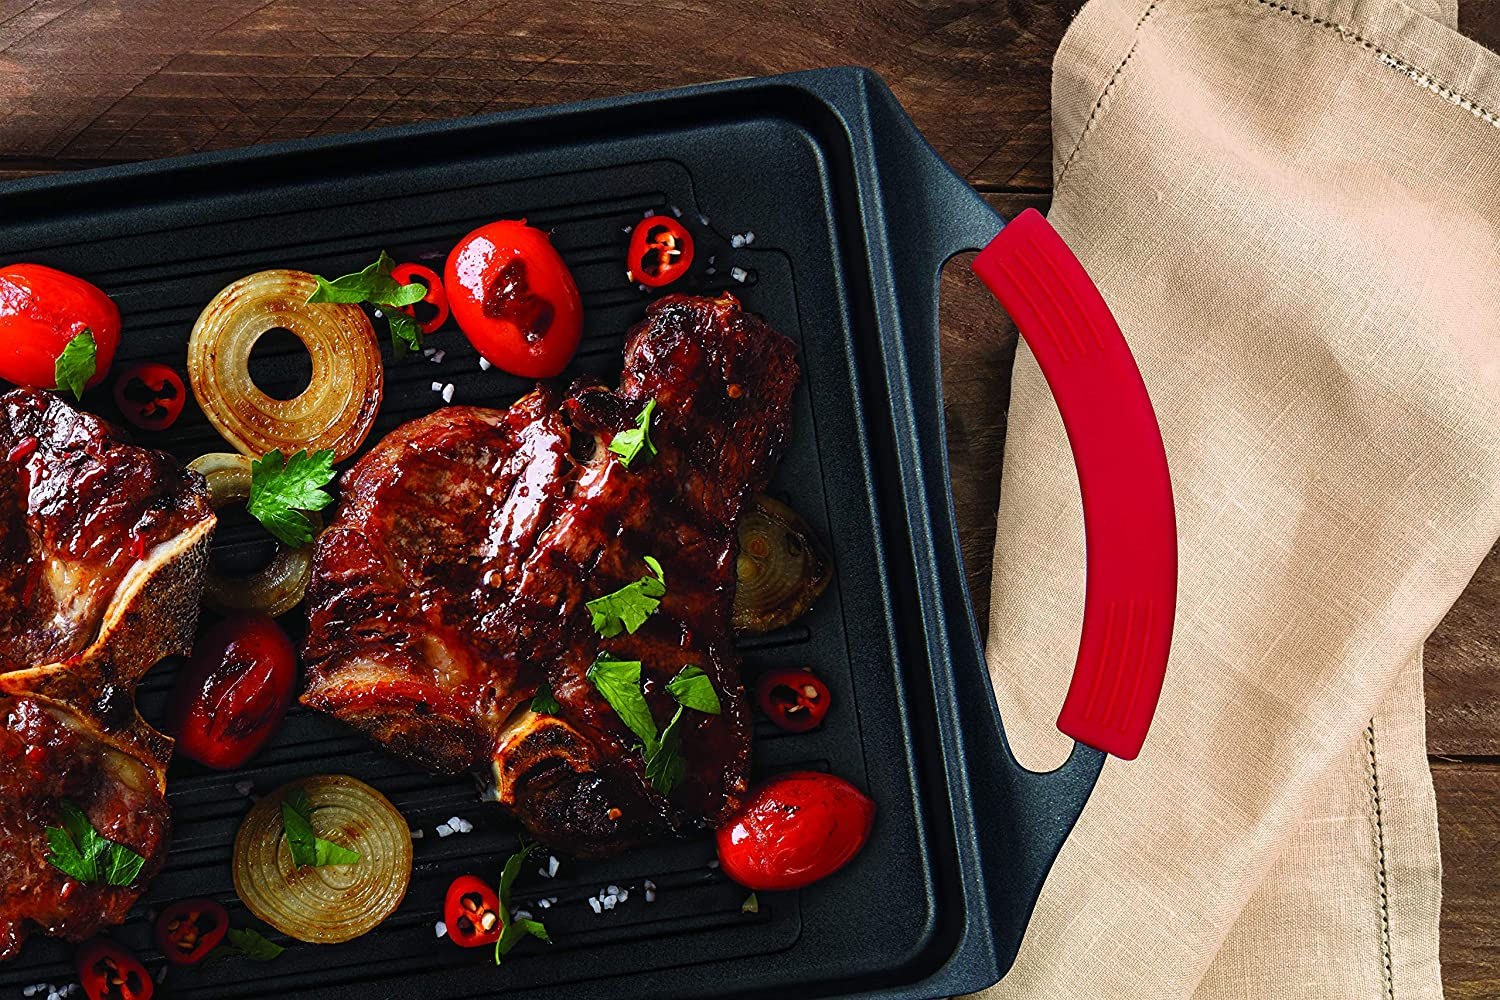 17 Black MasterPan Non-Stick Cast Aluminum Burner Grill Pan with Silicone Grips MP-138 Nonstick Cookware